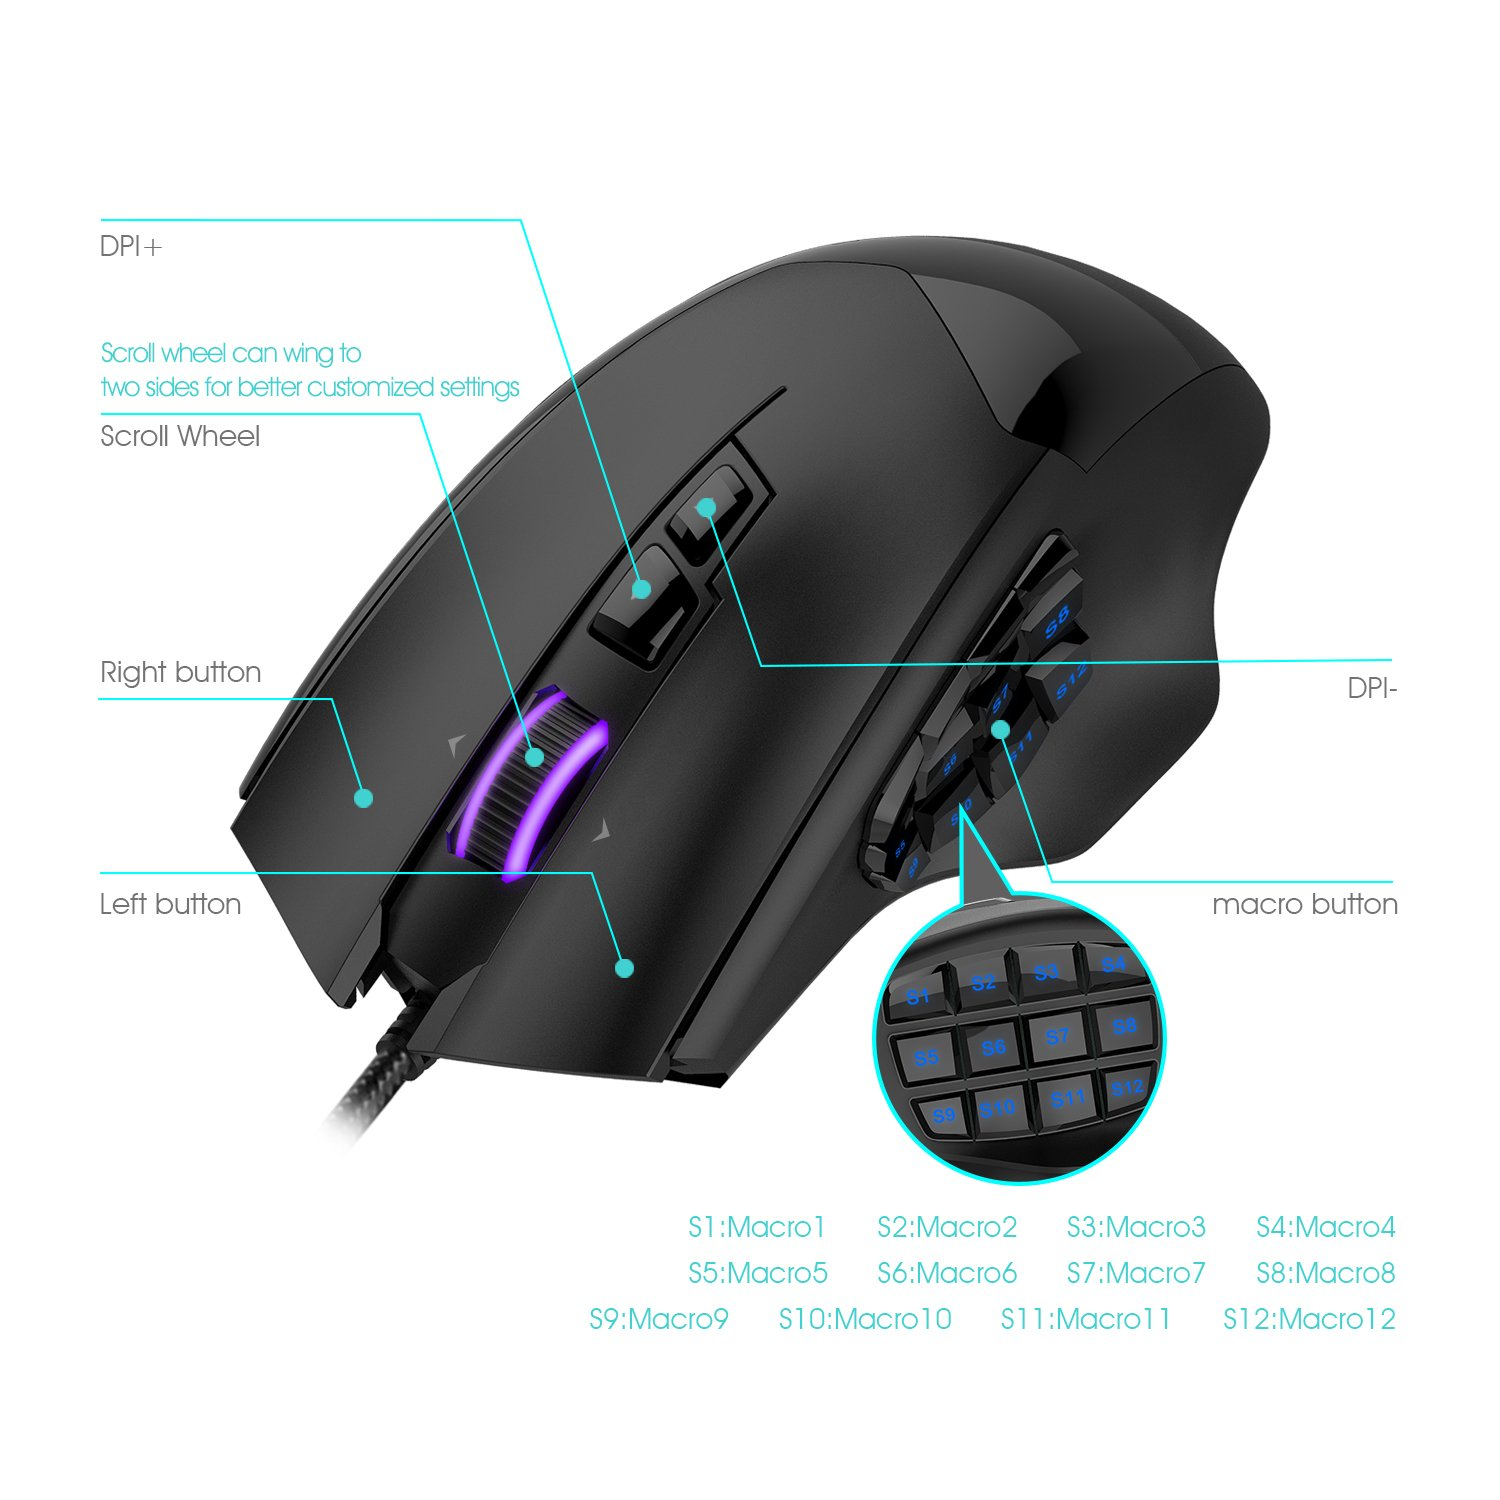 Mua Sn Phm Havit Hv Ms735 Mmo Gaming Mouse Wired 12000dpi 19 Optical Wiring Diagram Programmable Button Sensor Pixart Pmw3360